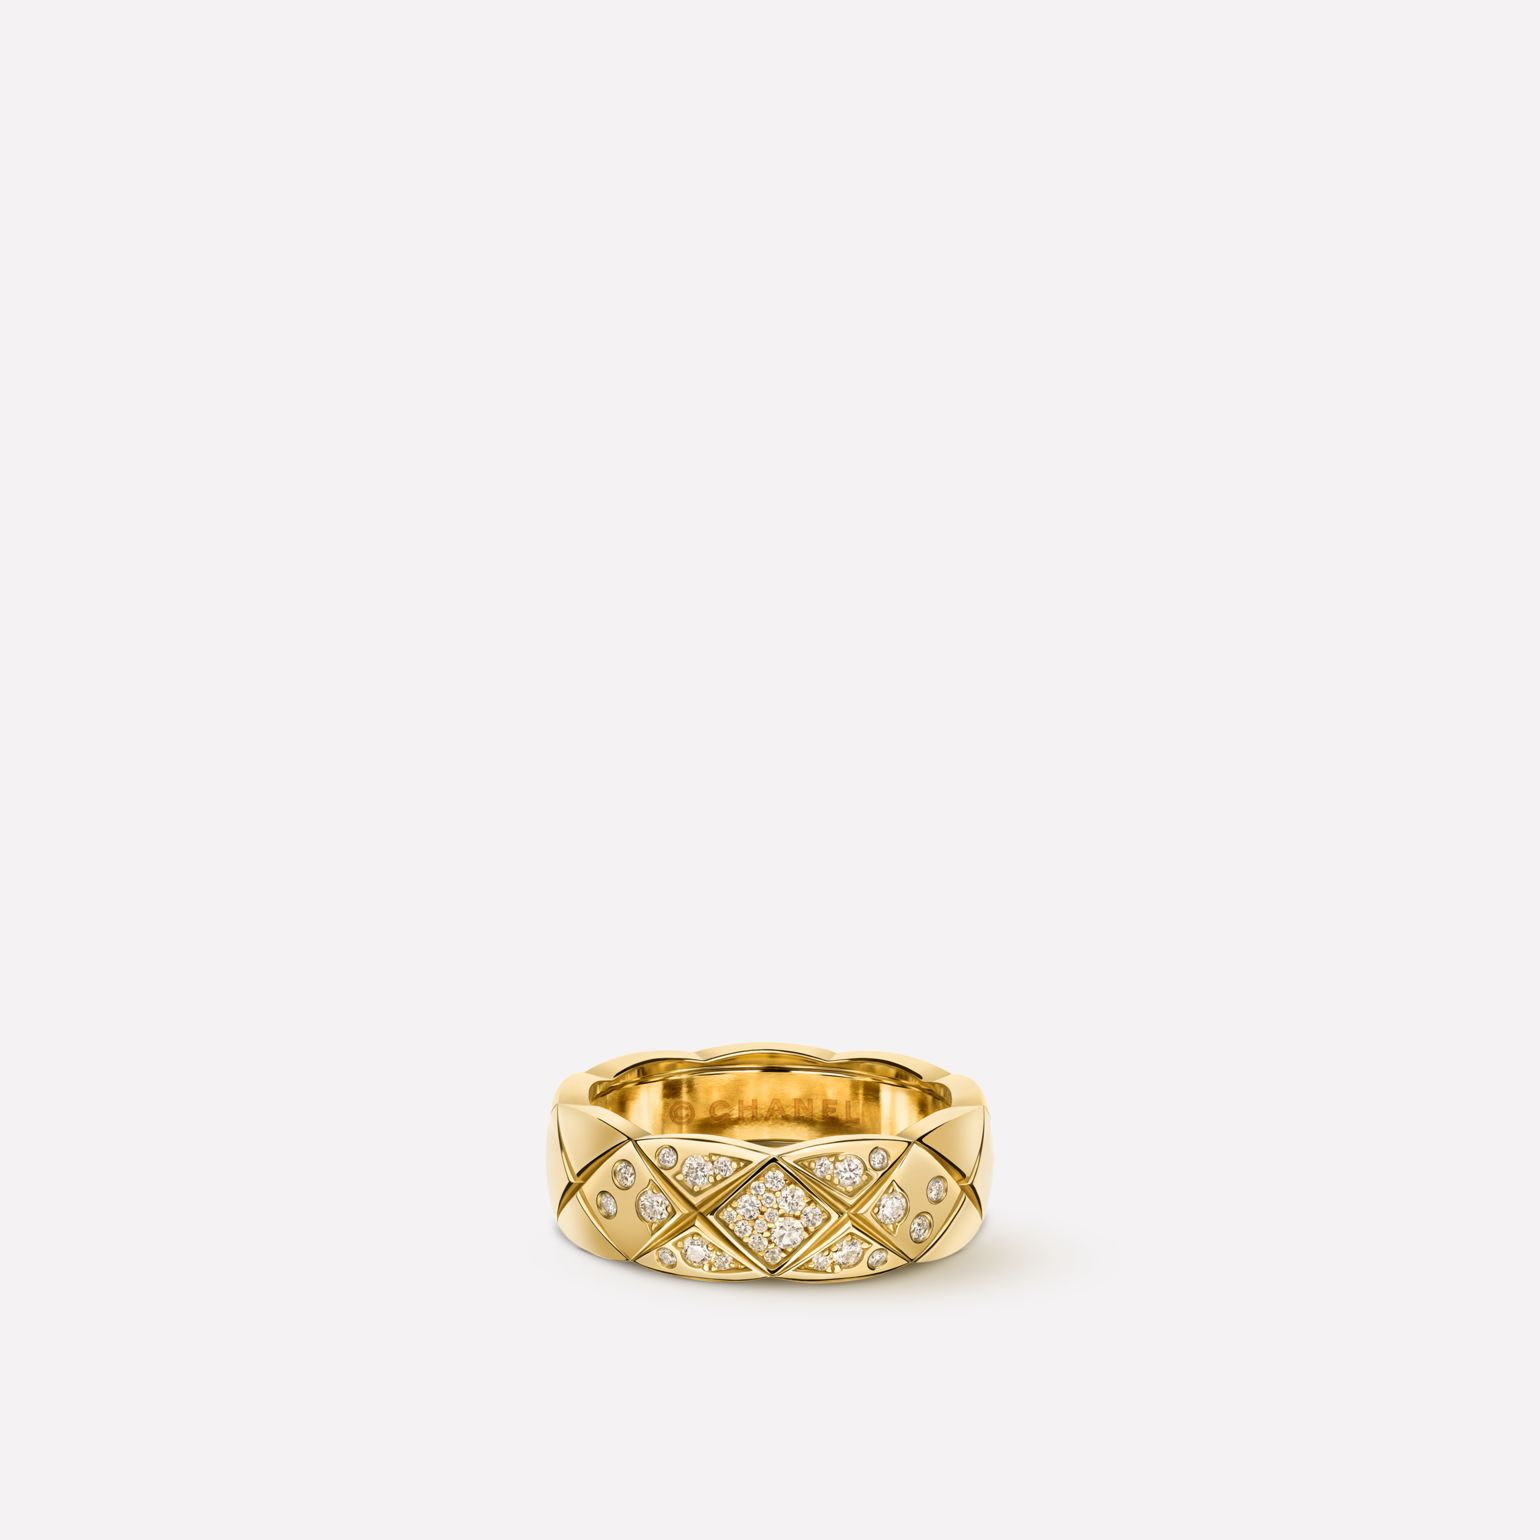 Coco Crush Ring Coco Crush quilted ring in 18K yellow gold and diamonds. Small version.